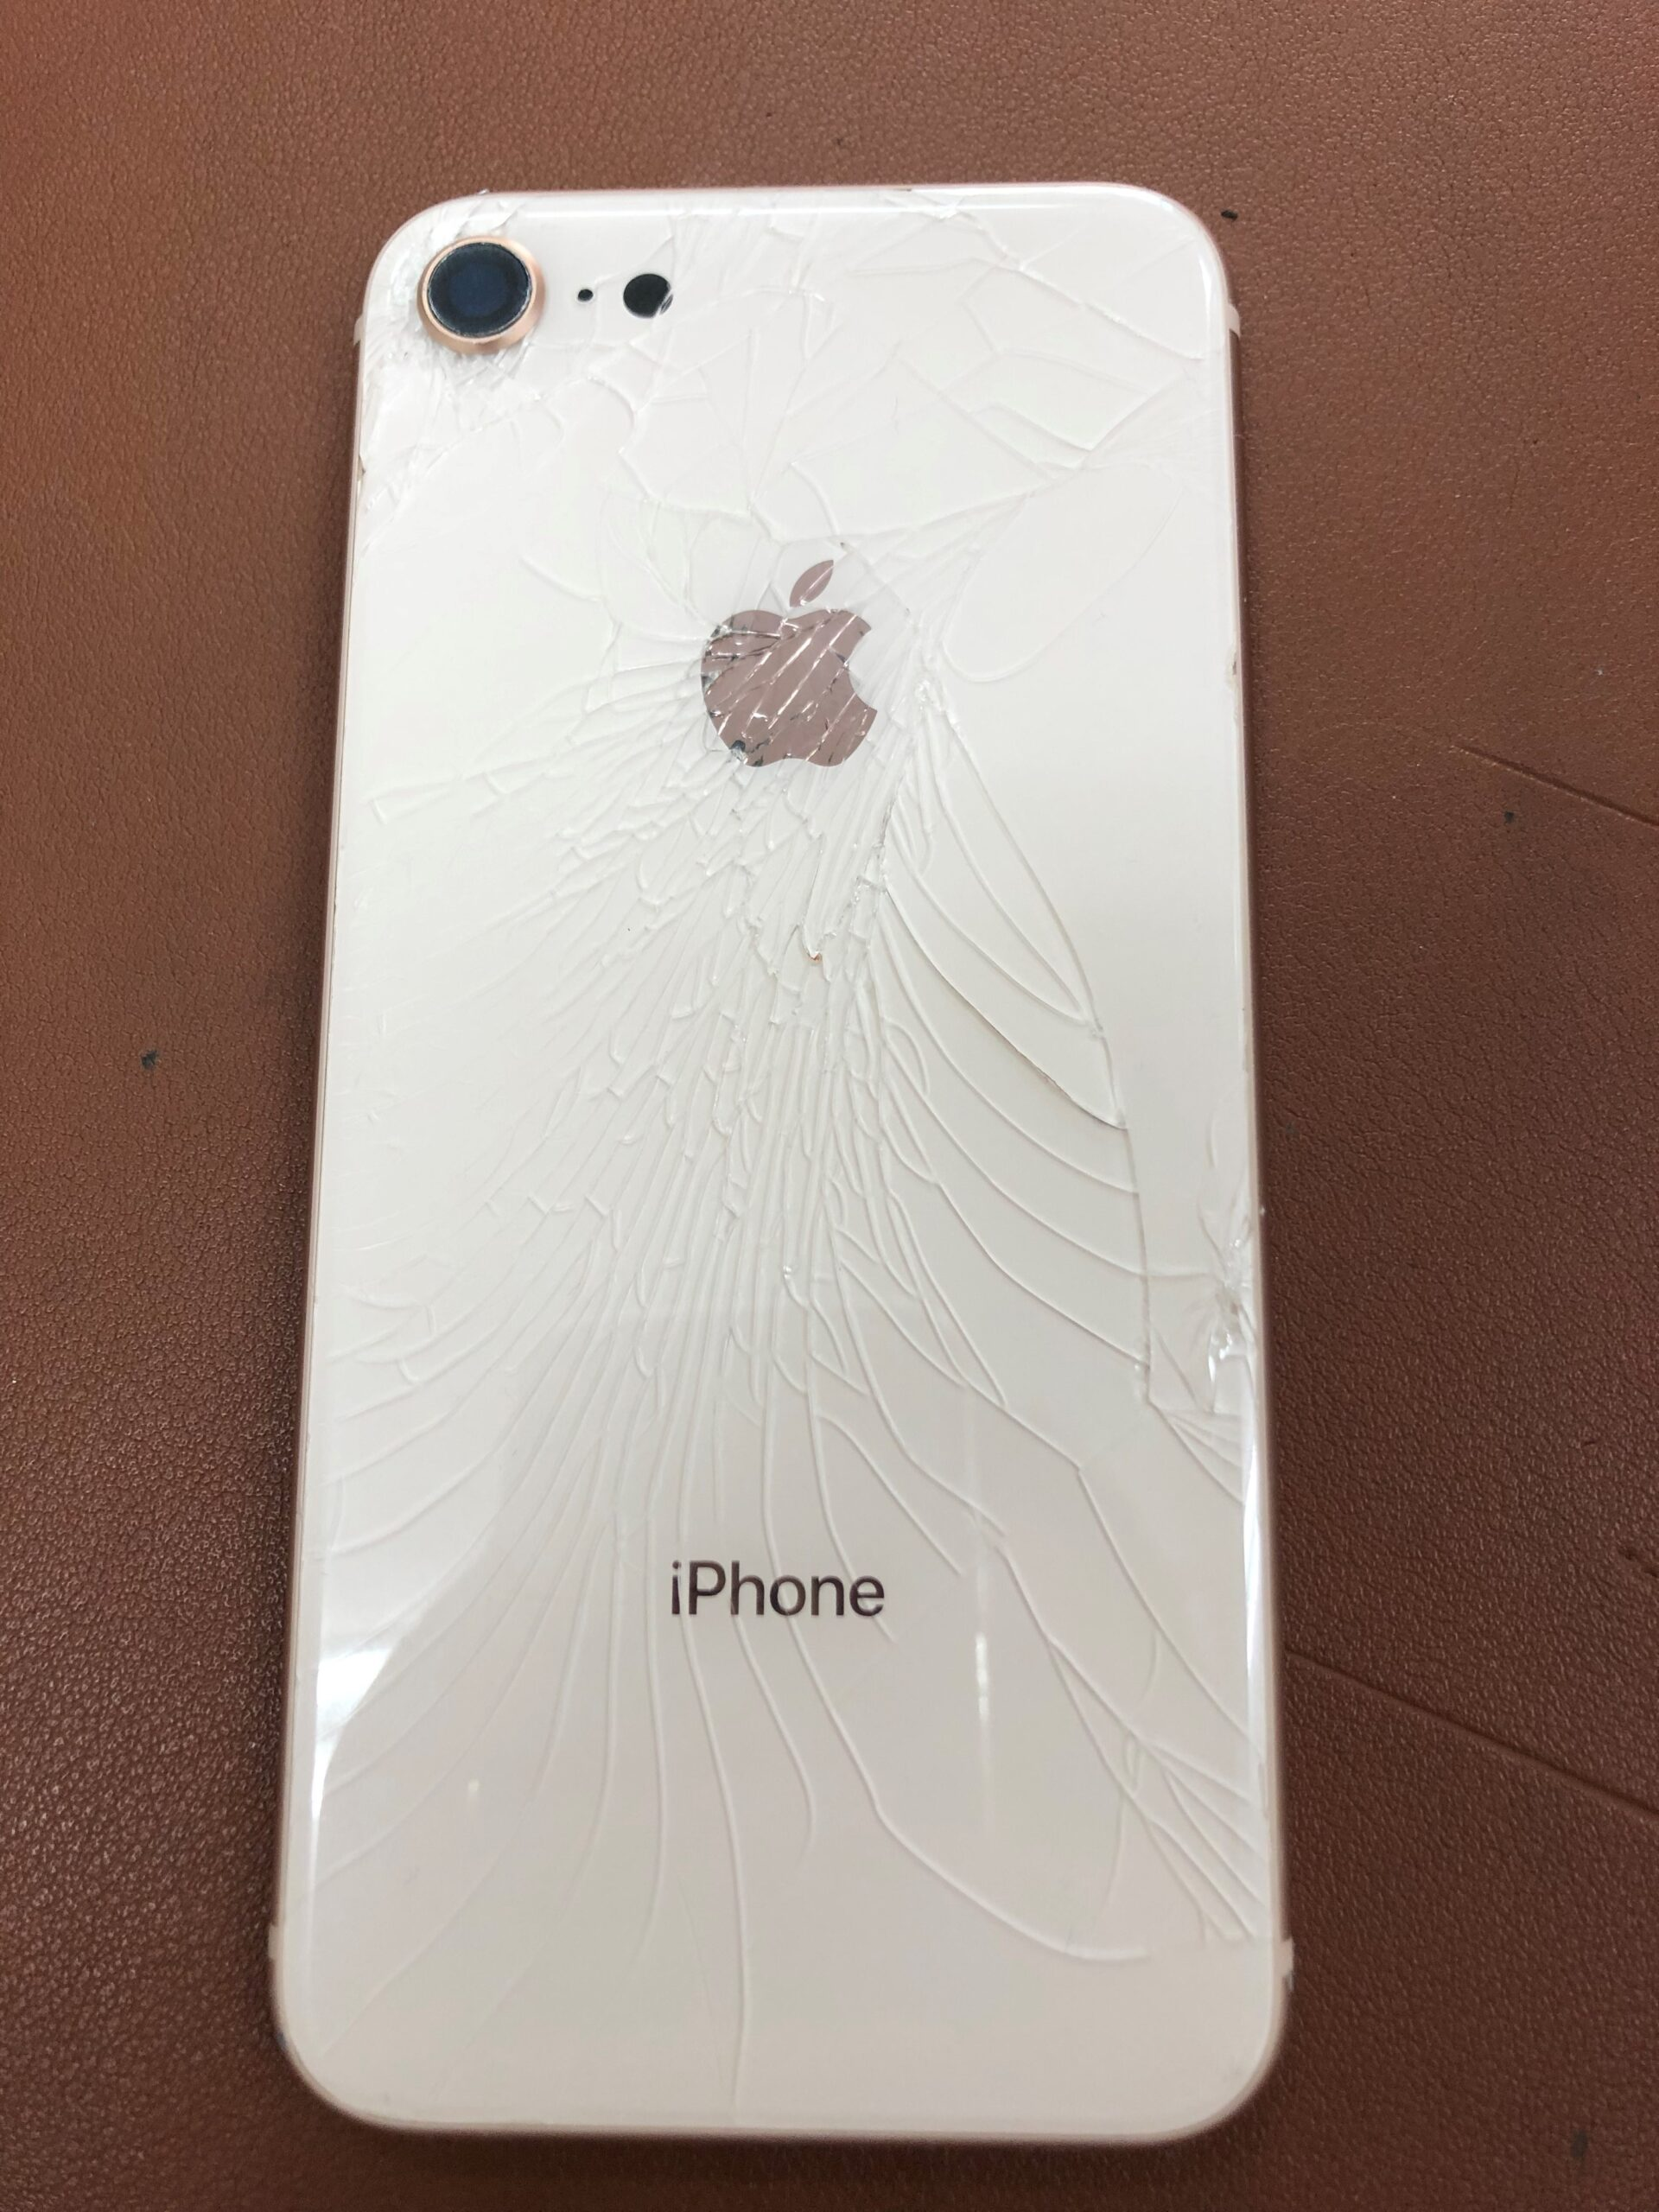 iphone8バックガラス割れ